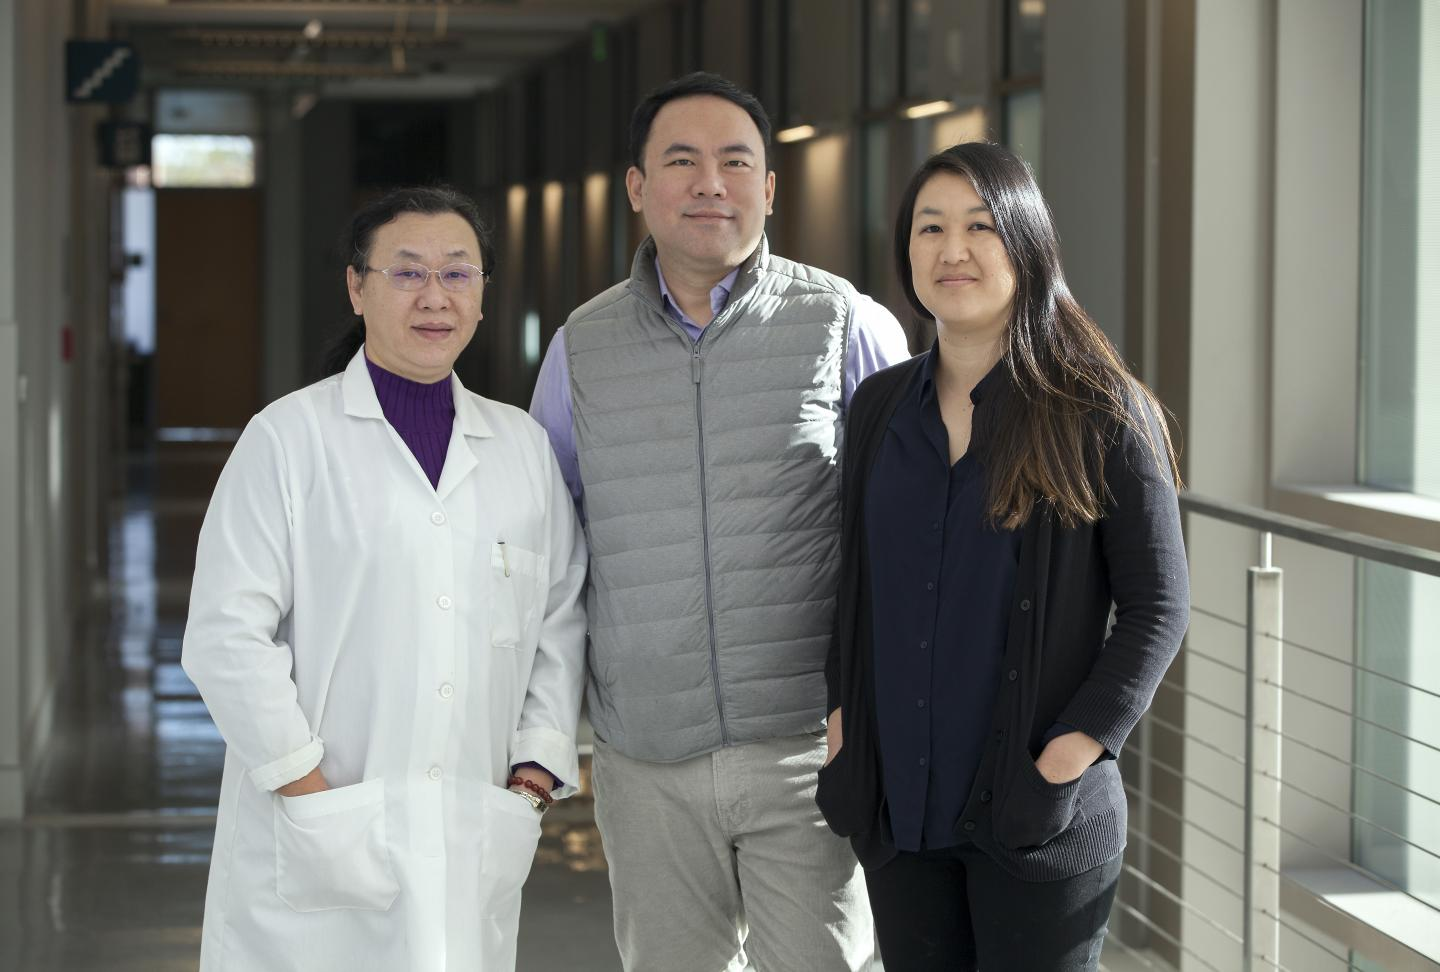 Dr. Zhi Zhong of MUSC  and Dr. James Chou and Dr. Sherine Chan, two of the founders of Lydex Pharmaceuticals